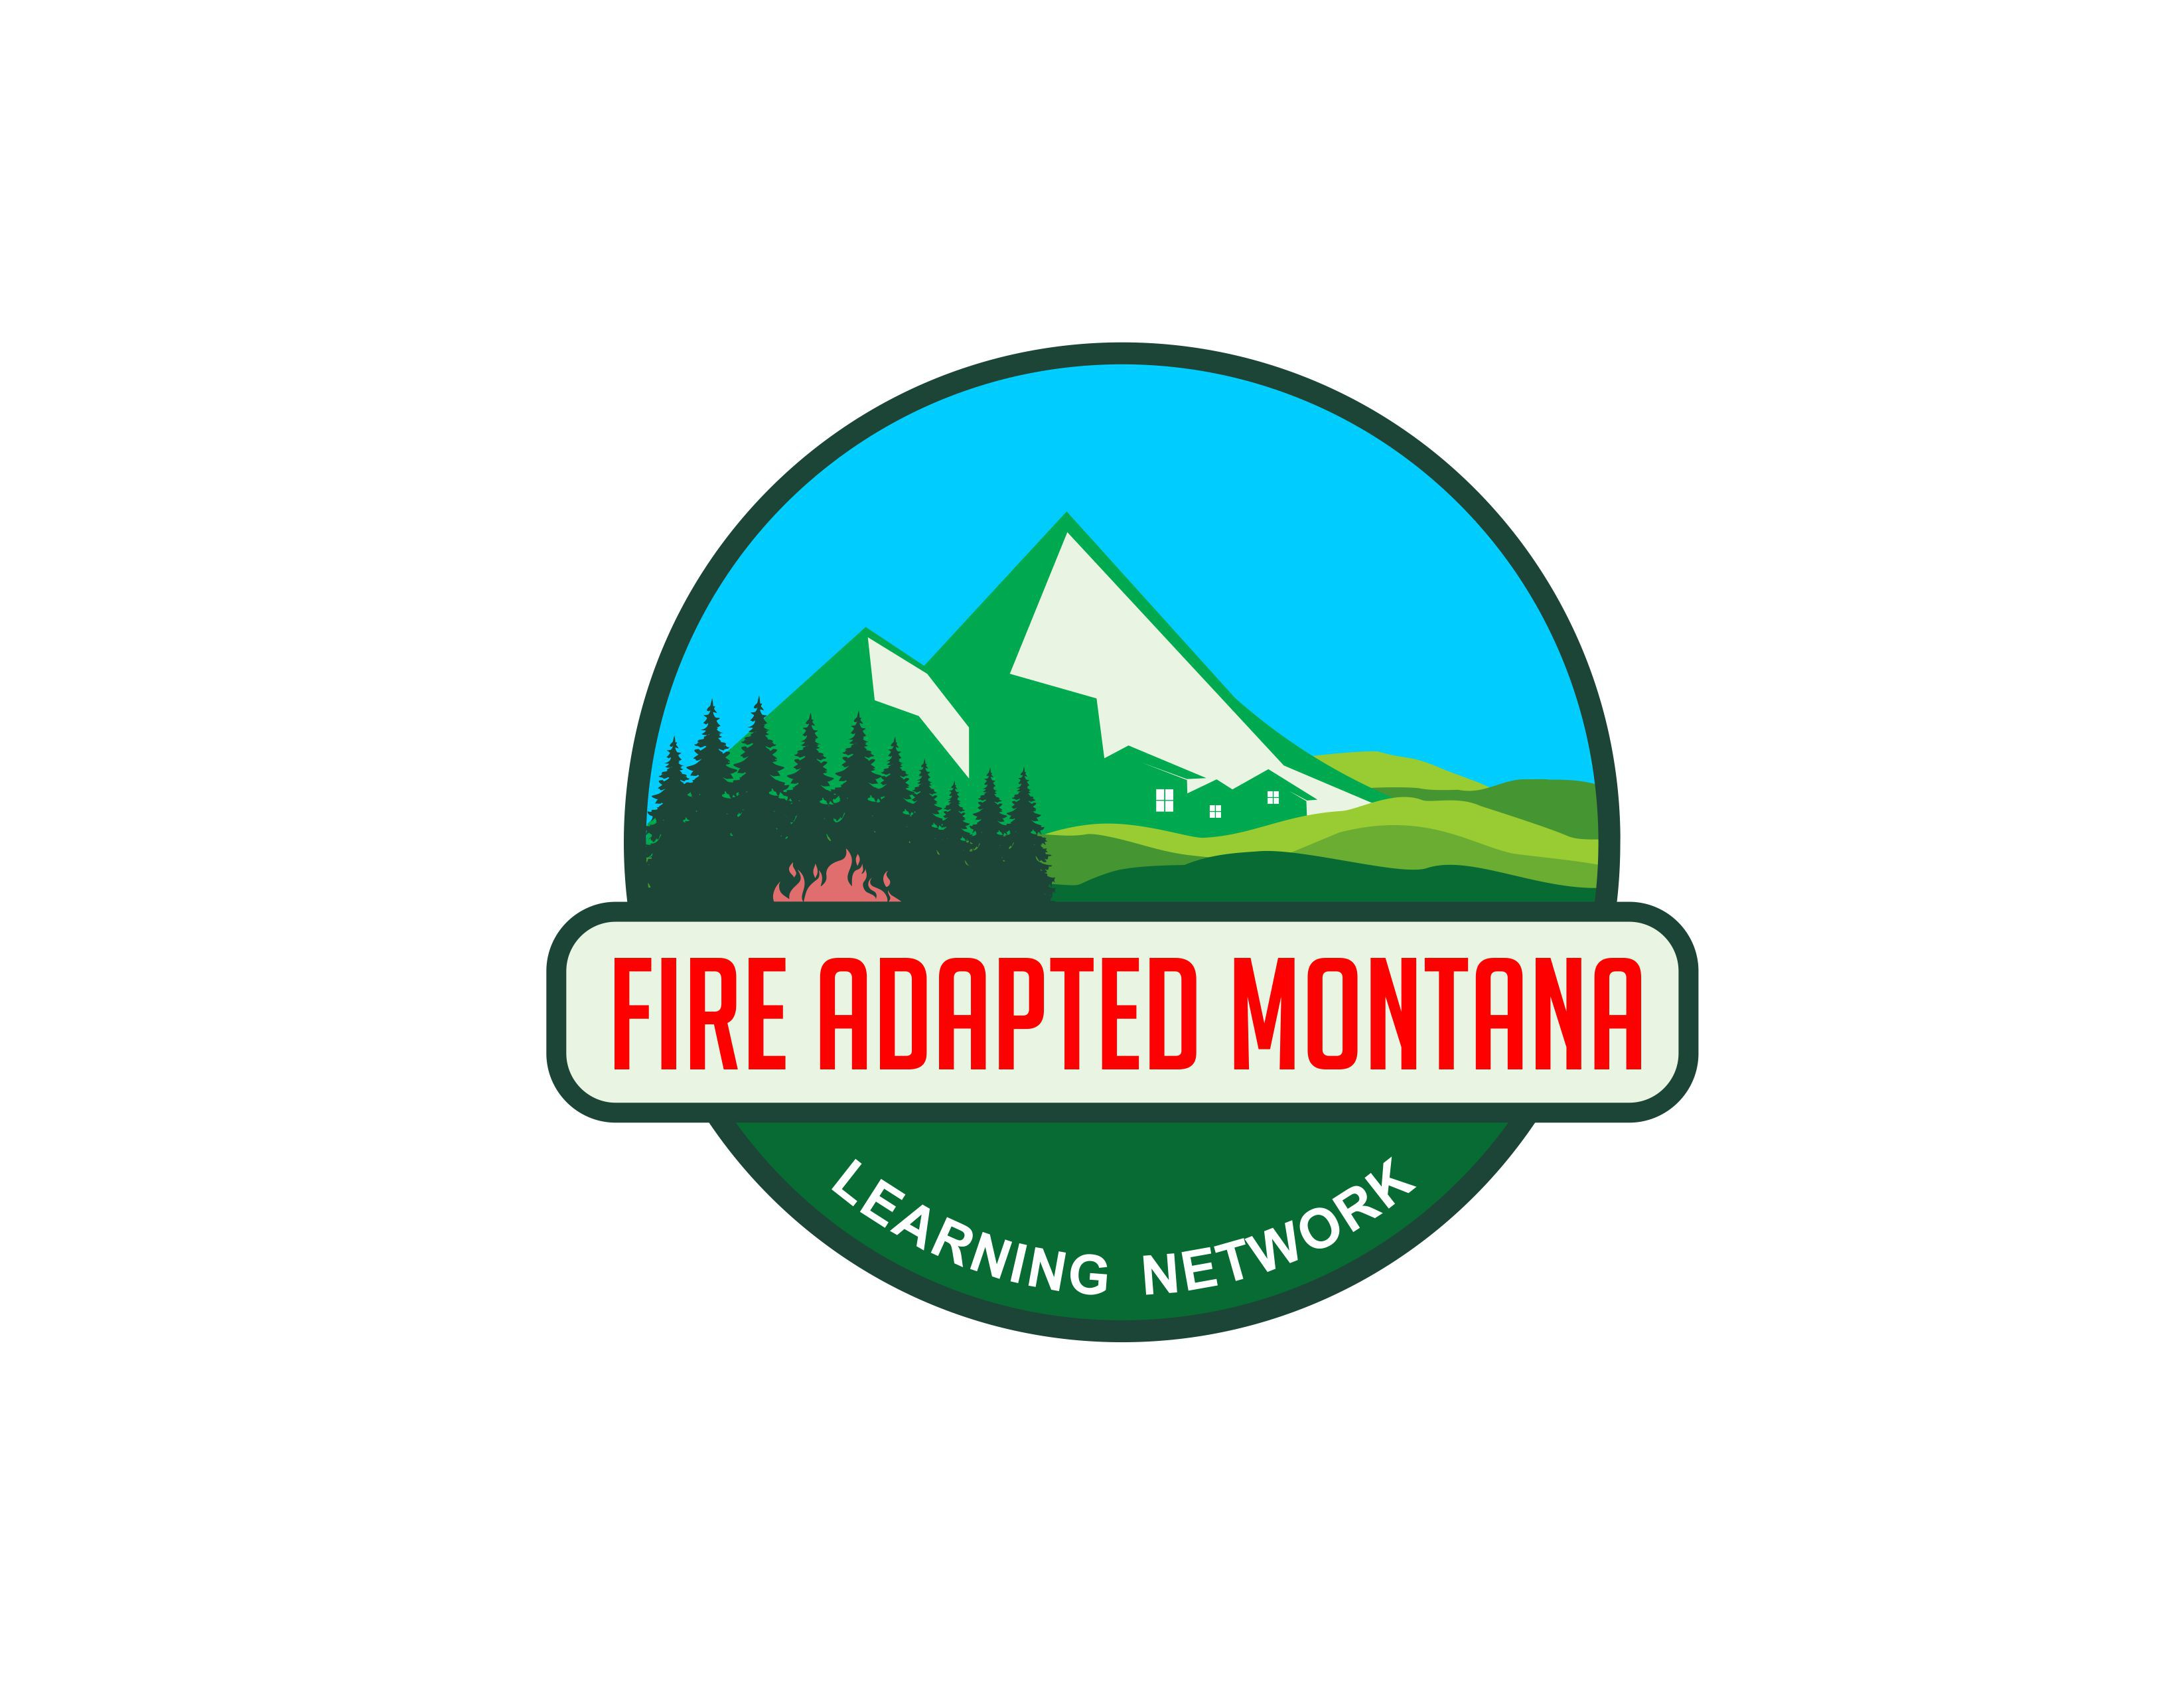 Craft an inviting logo for a Montana learning network